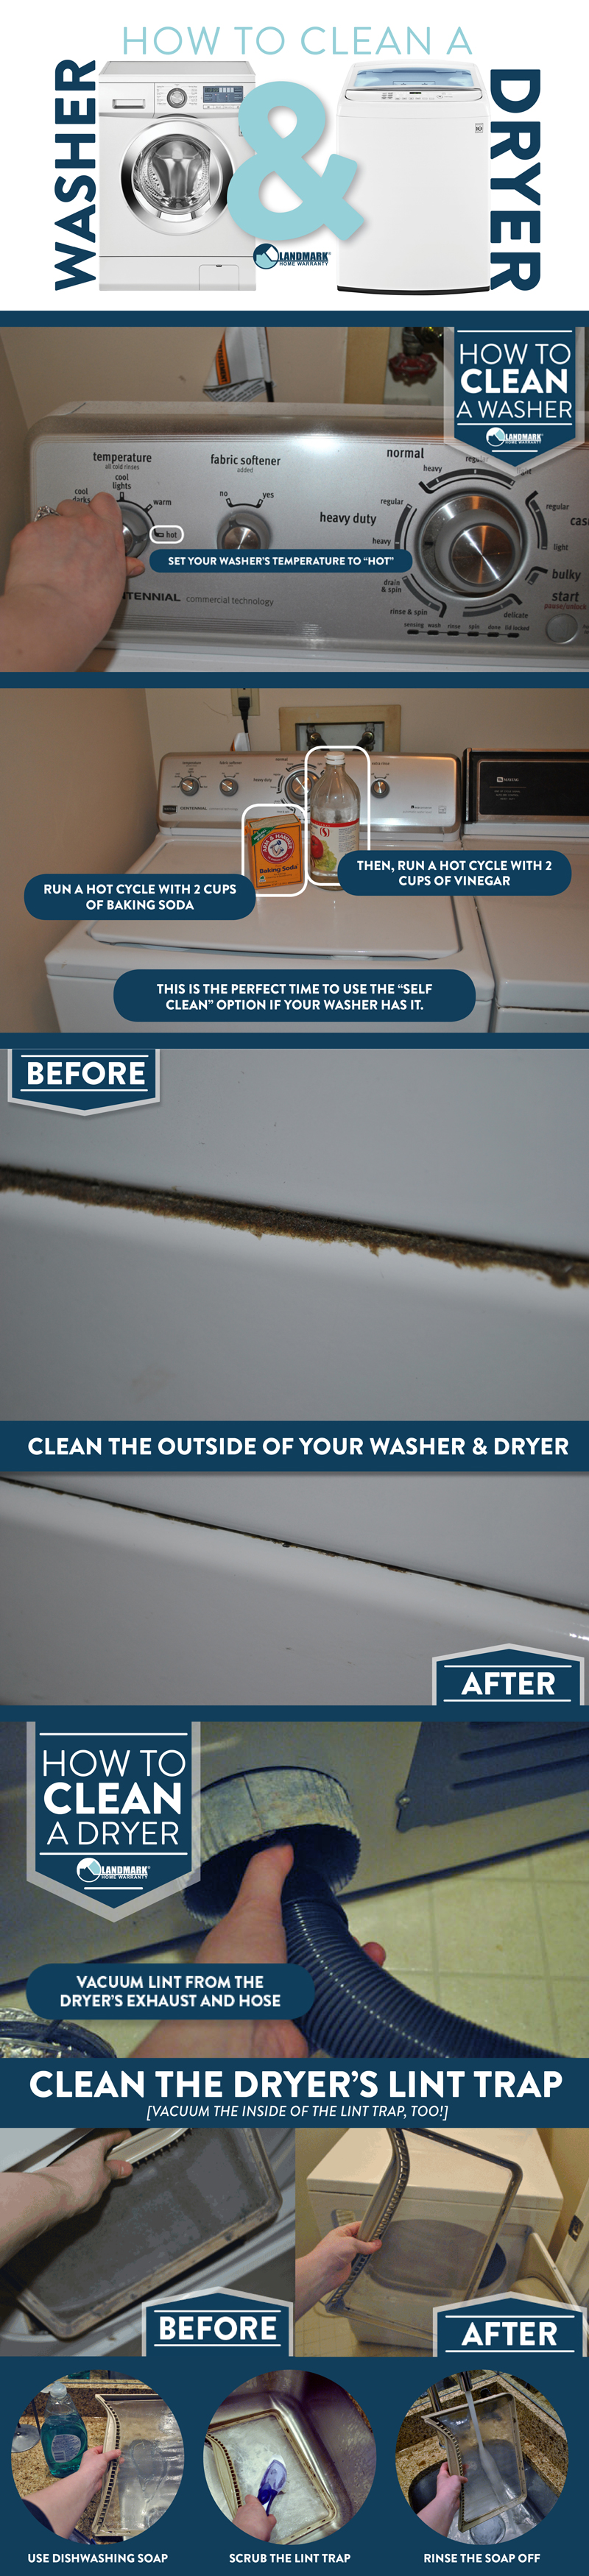 The full infographic on cleaning your washer and dryer.